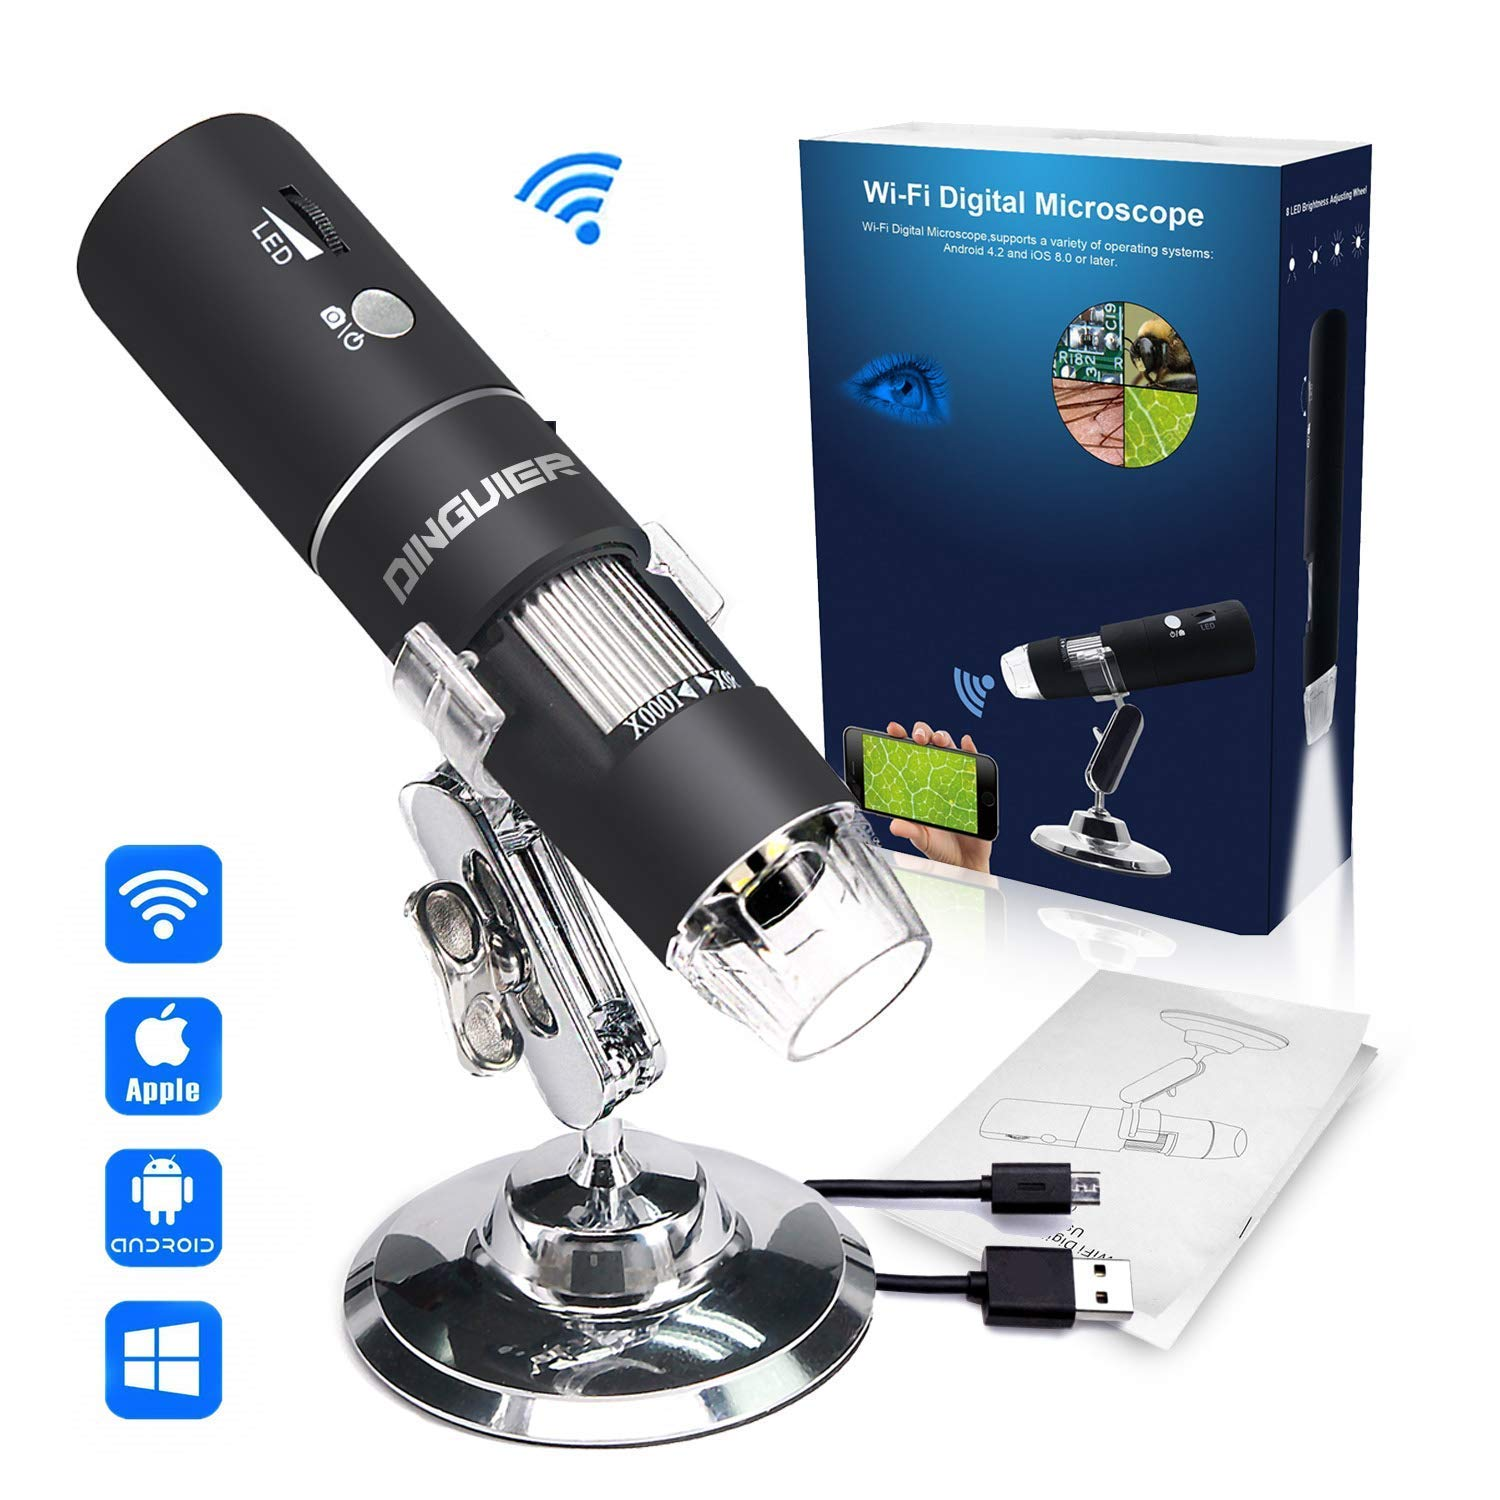 1080P FHD 2.0 MP 8 LED Handheld Microscope Endoscope Magnifier GNSDA Wireless Digital Microscope Compatible with Many Smartphone or Tablet PC